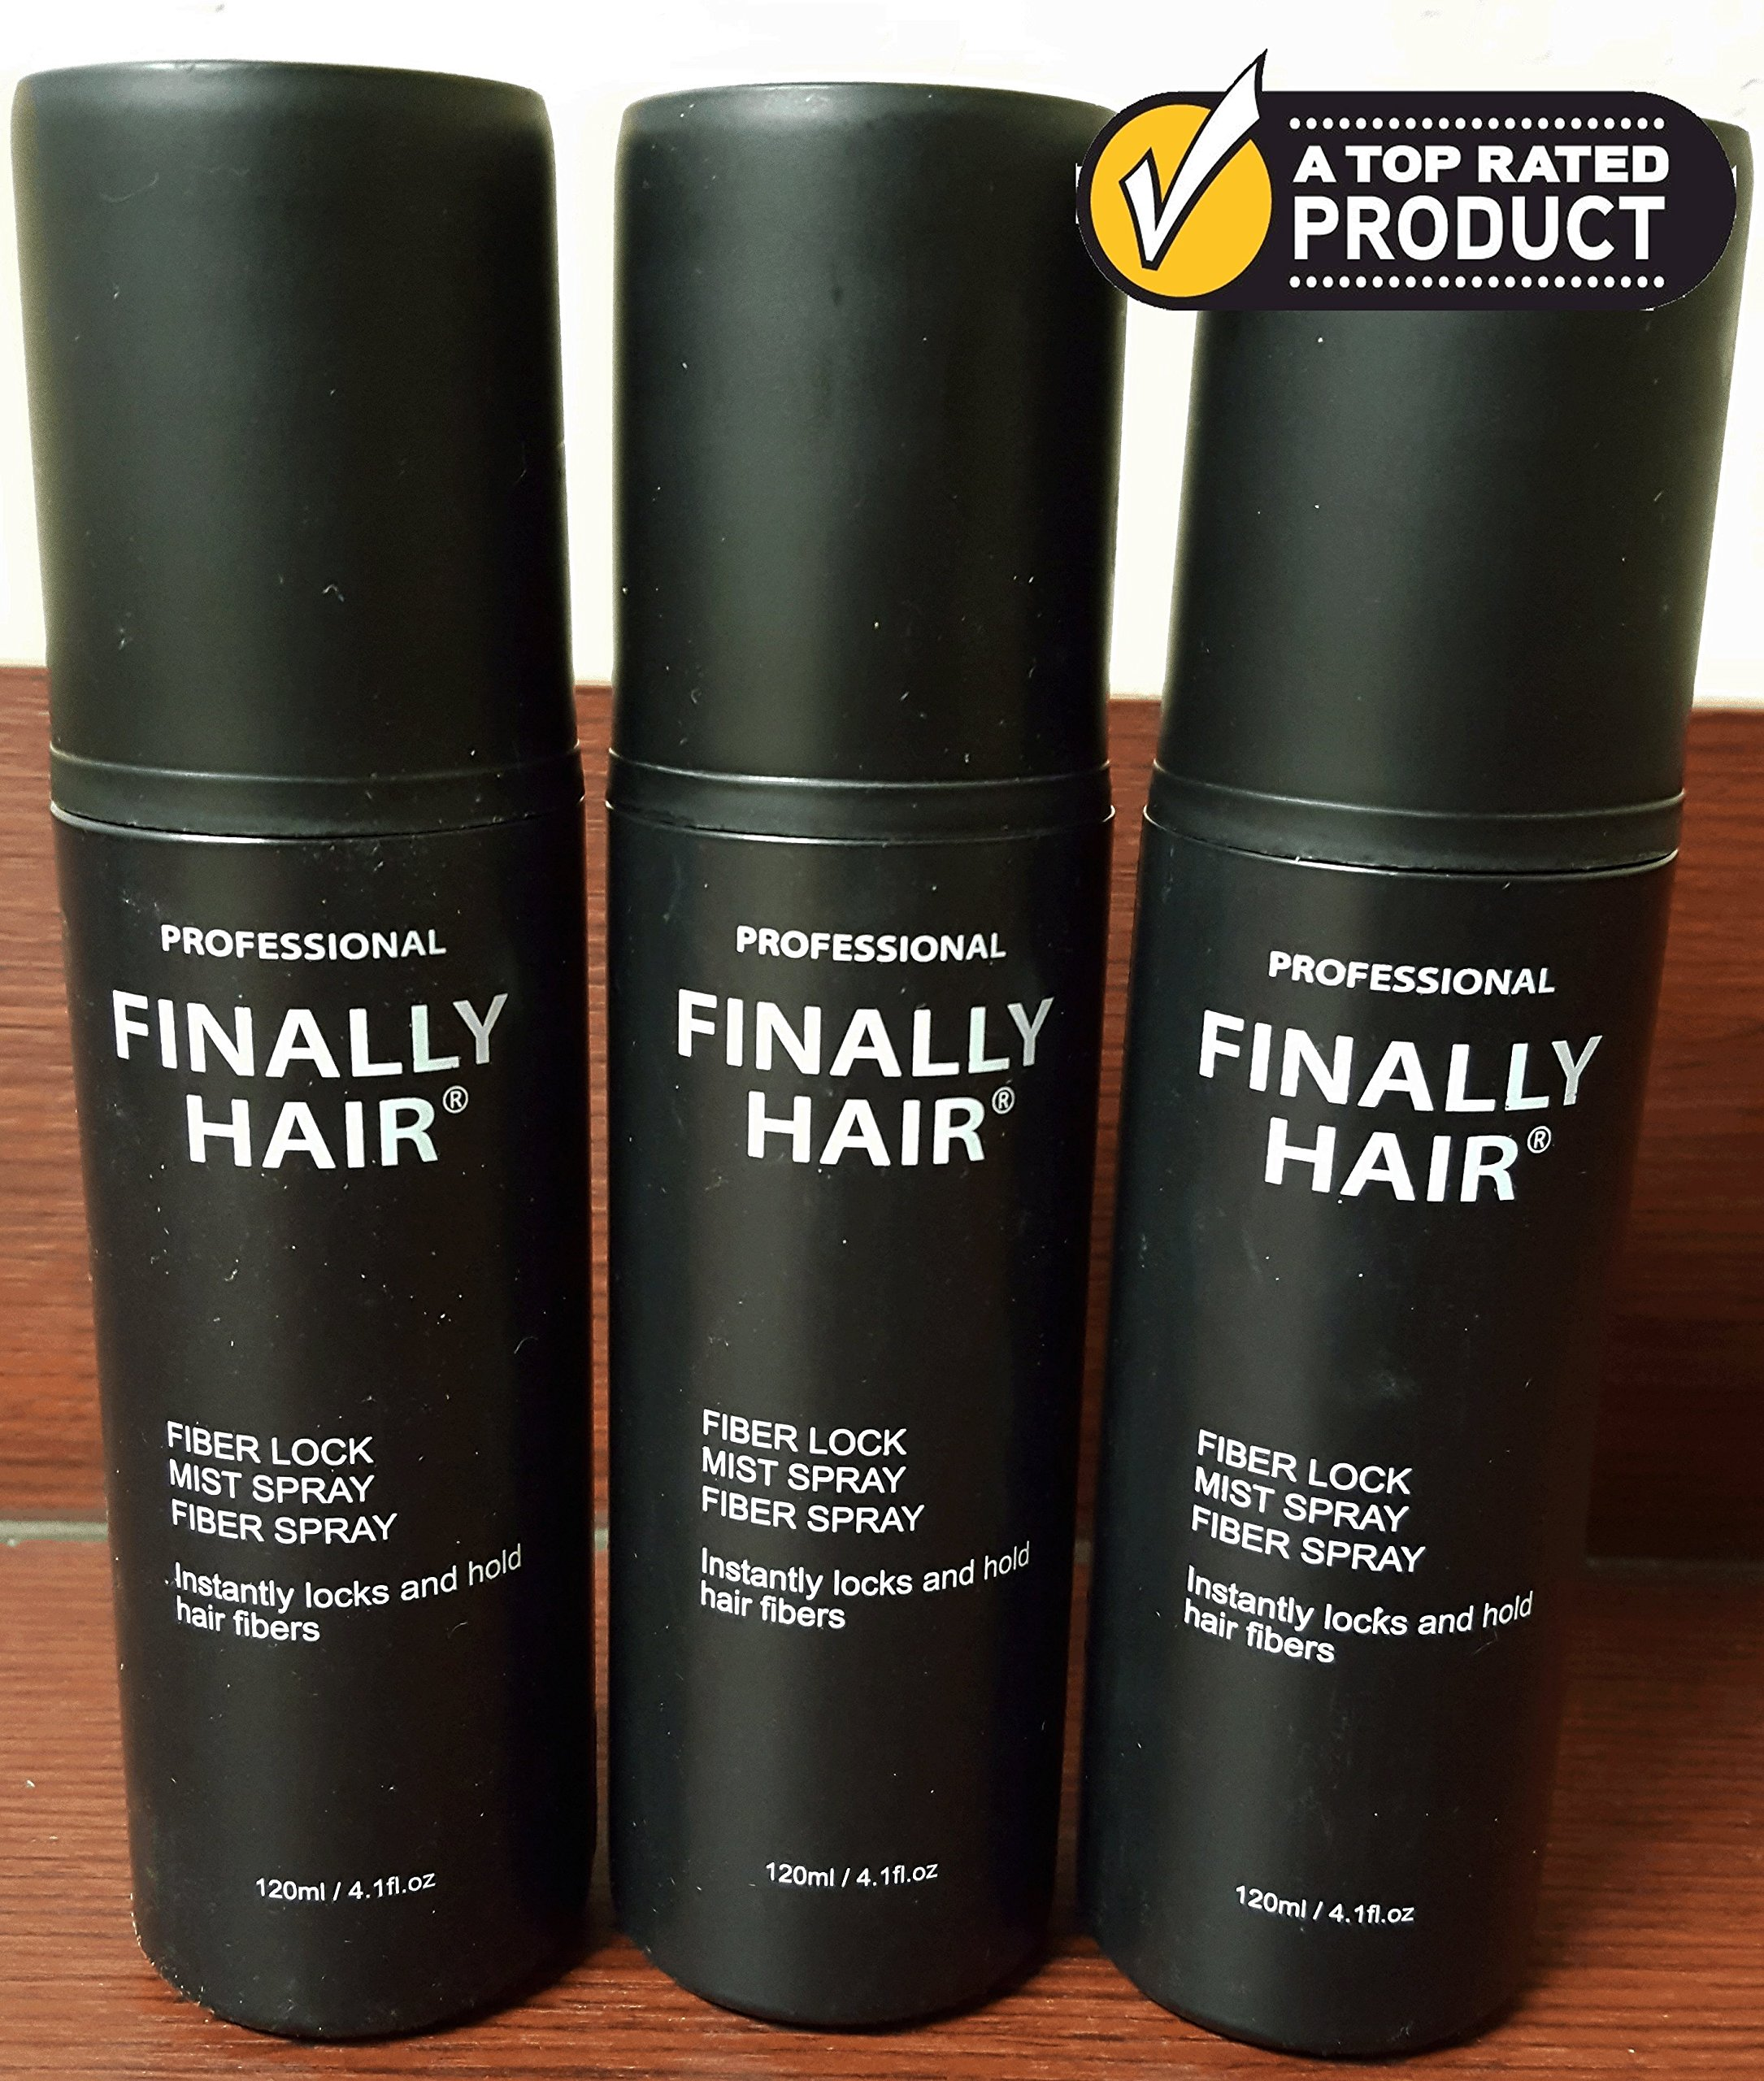 Hair Building Fiber STRONG Fiber Lock Hair Spray 3 Pack by Finally Hair (can be used with competitors fibers like Toppik, Xfusion, Strand, Cuuva, Efficient, Fibrex, Bosley)